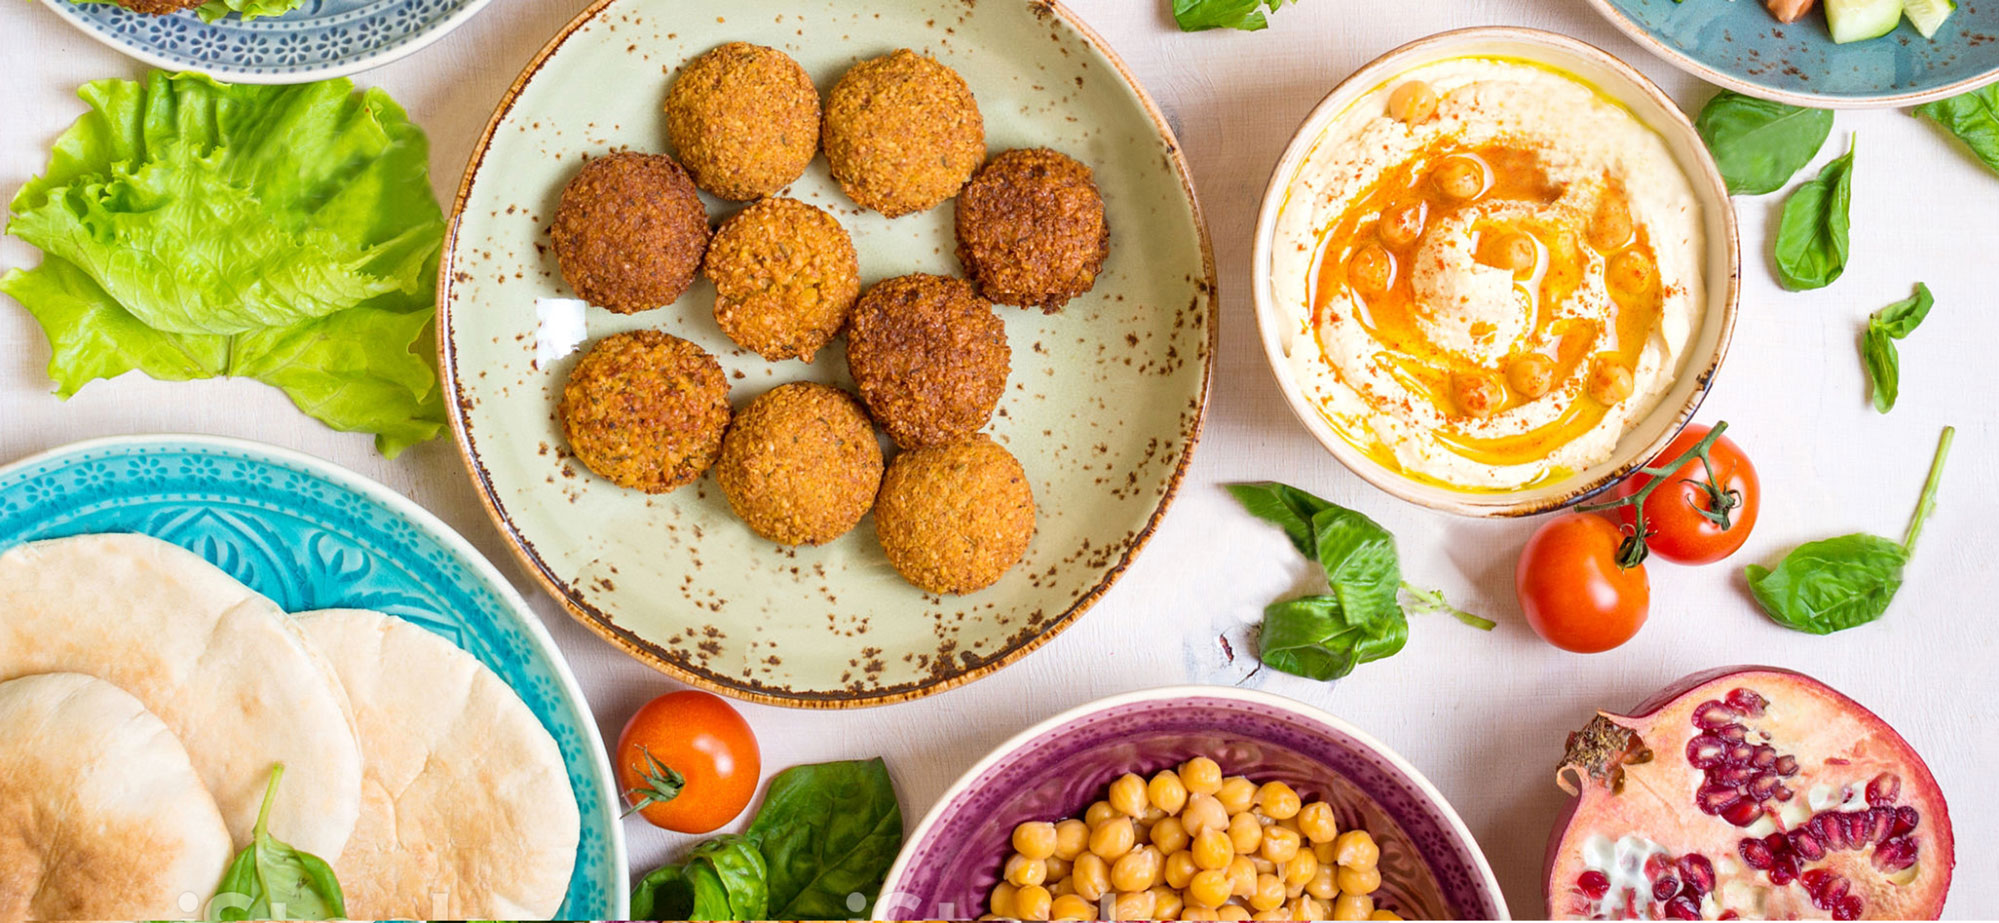 August - August: We have a middle eastern cooking classwith RCMA, the Geneva based association supporting Syrian refugees — Tickets here.